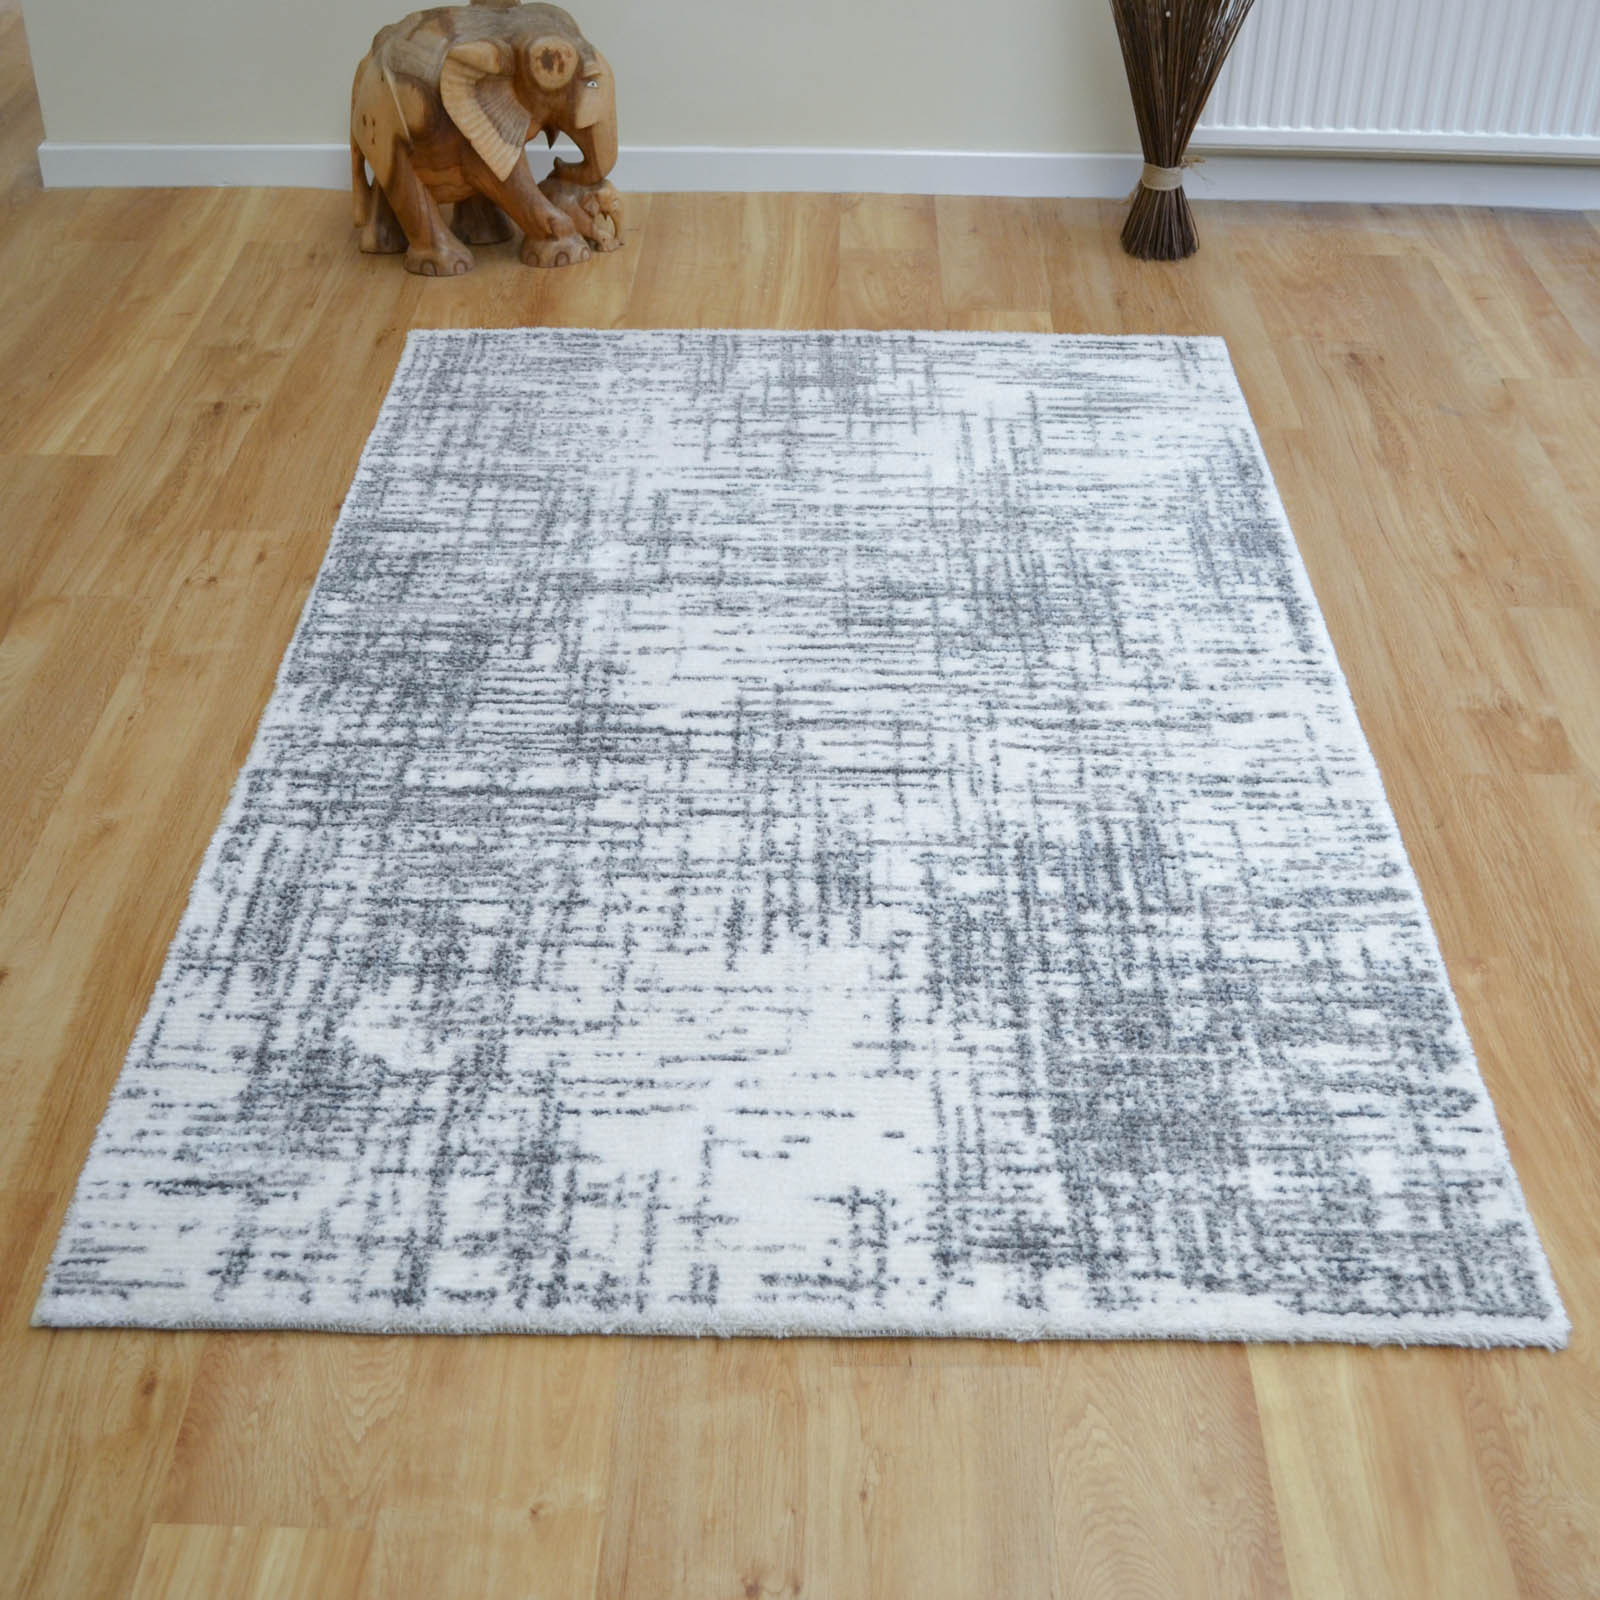 Chelsea Rugs 2228 100 in Ivory and Grey